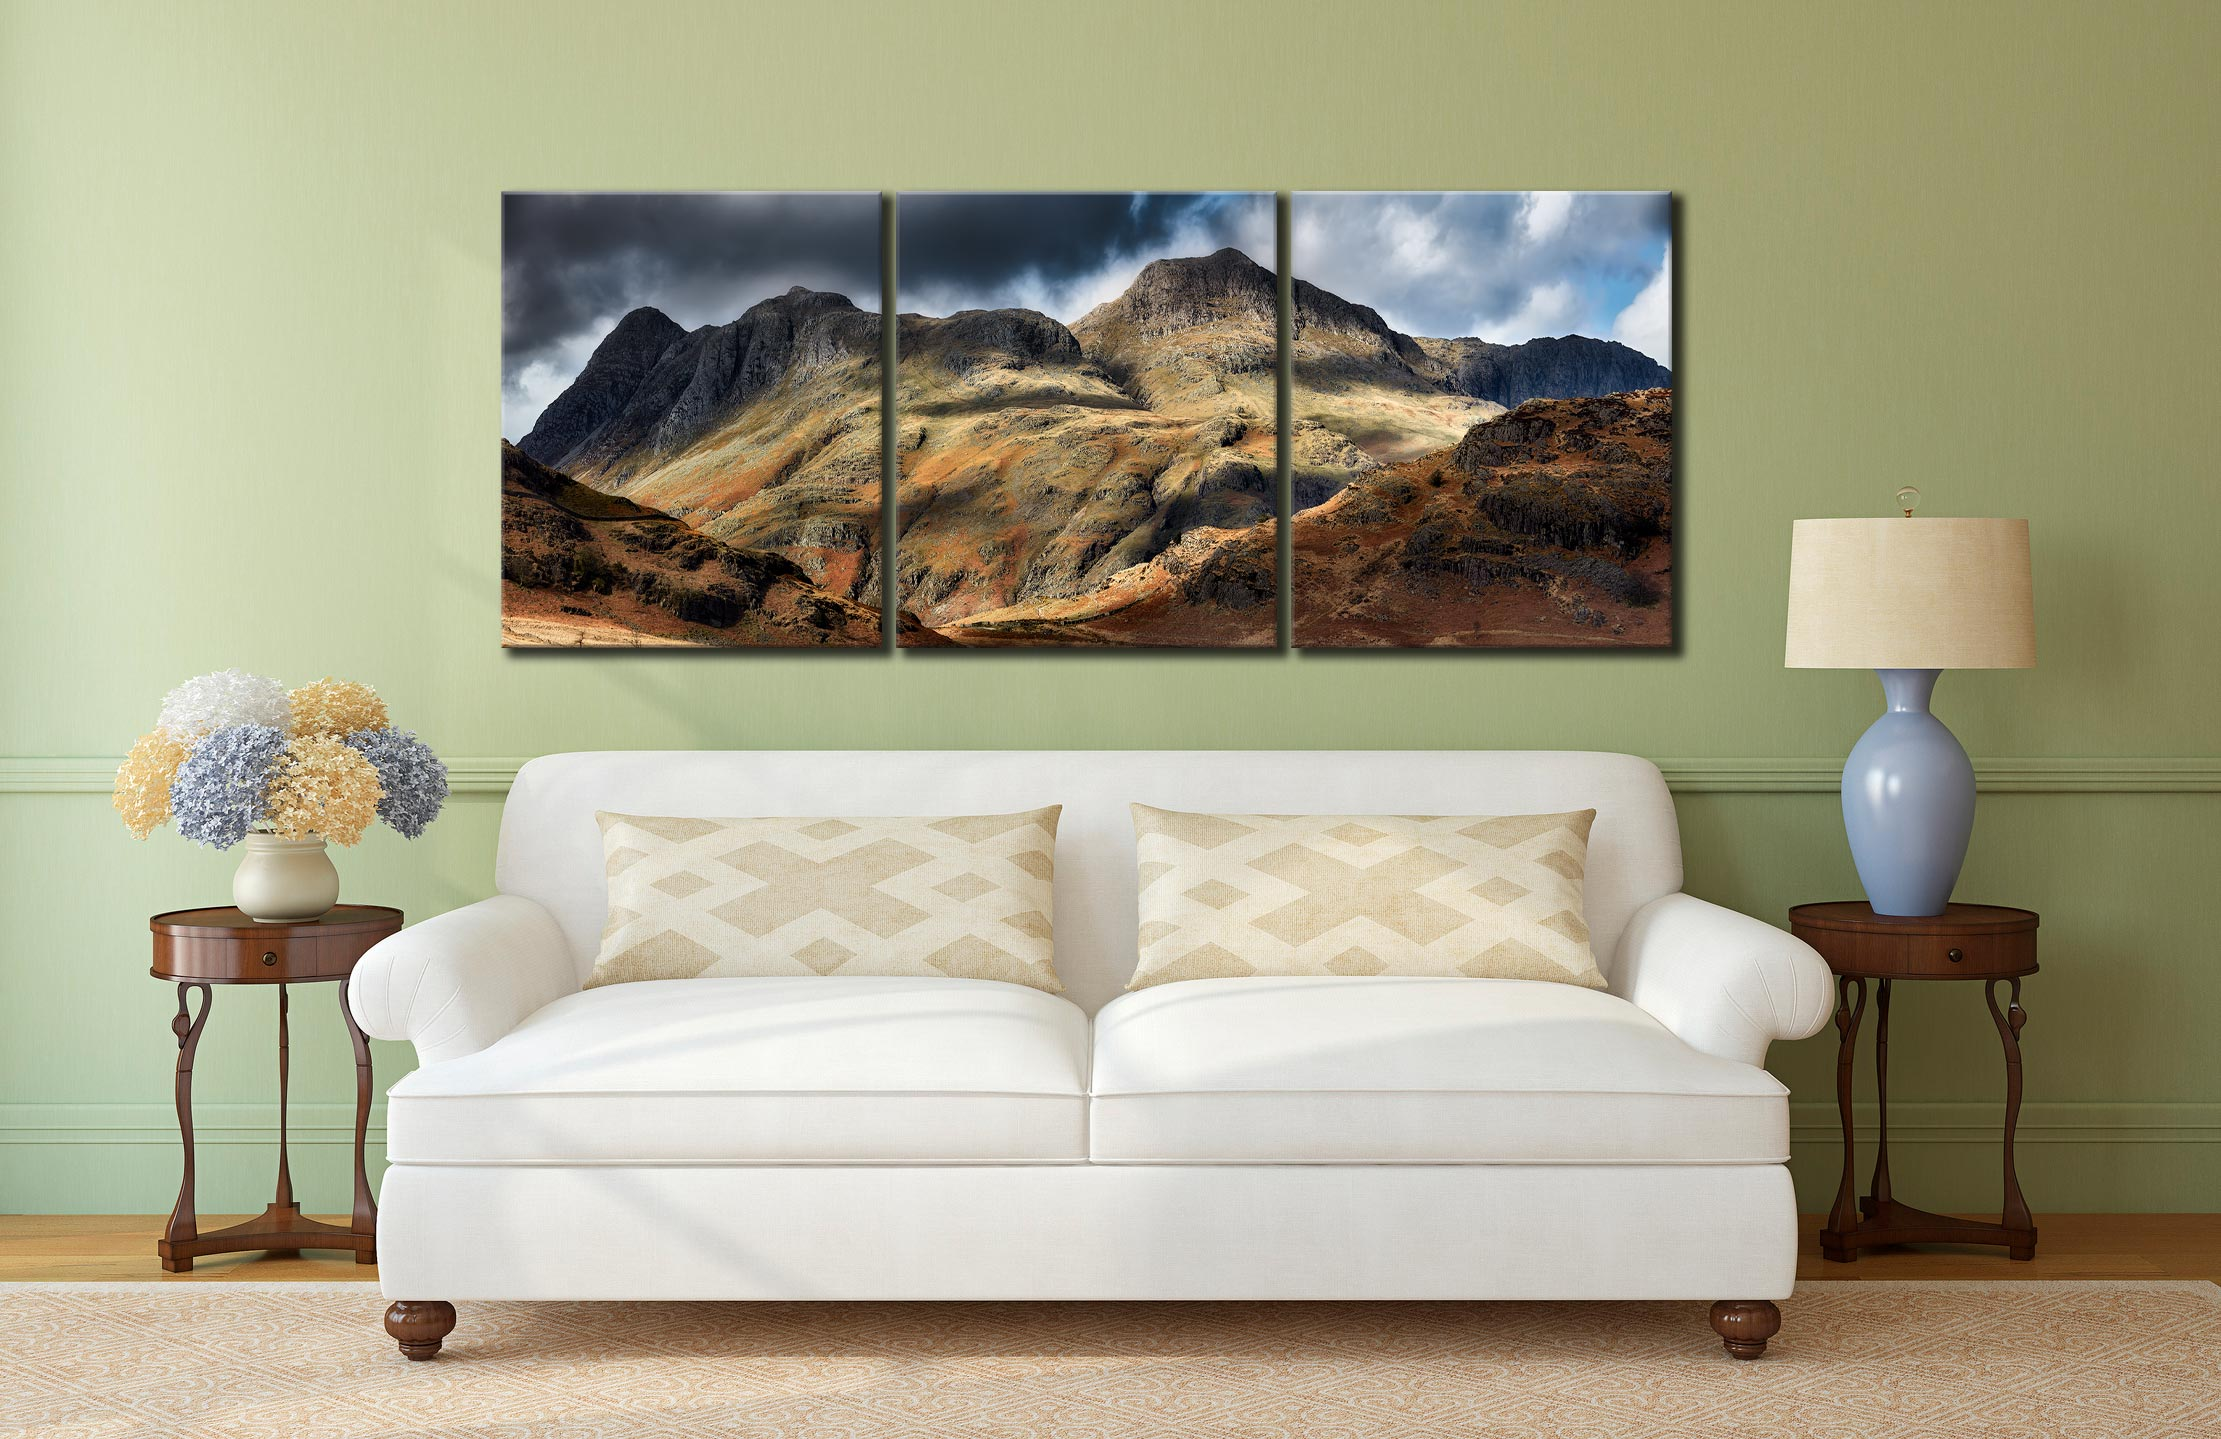 The Langdale Pikes  - 3 Panel Canvas on Wall